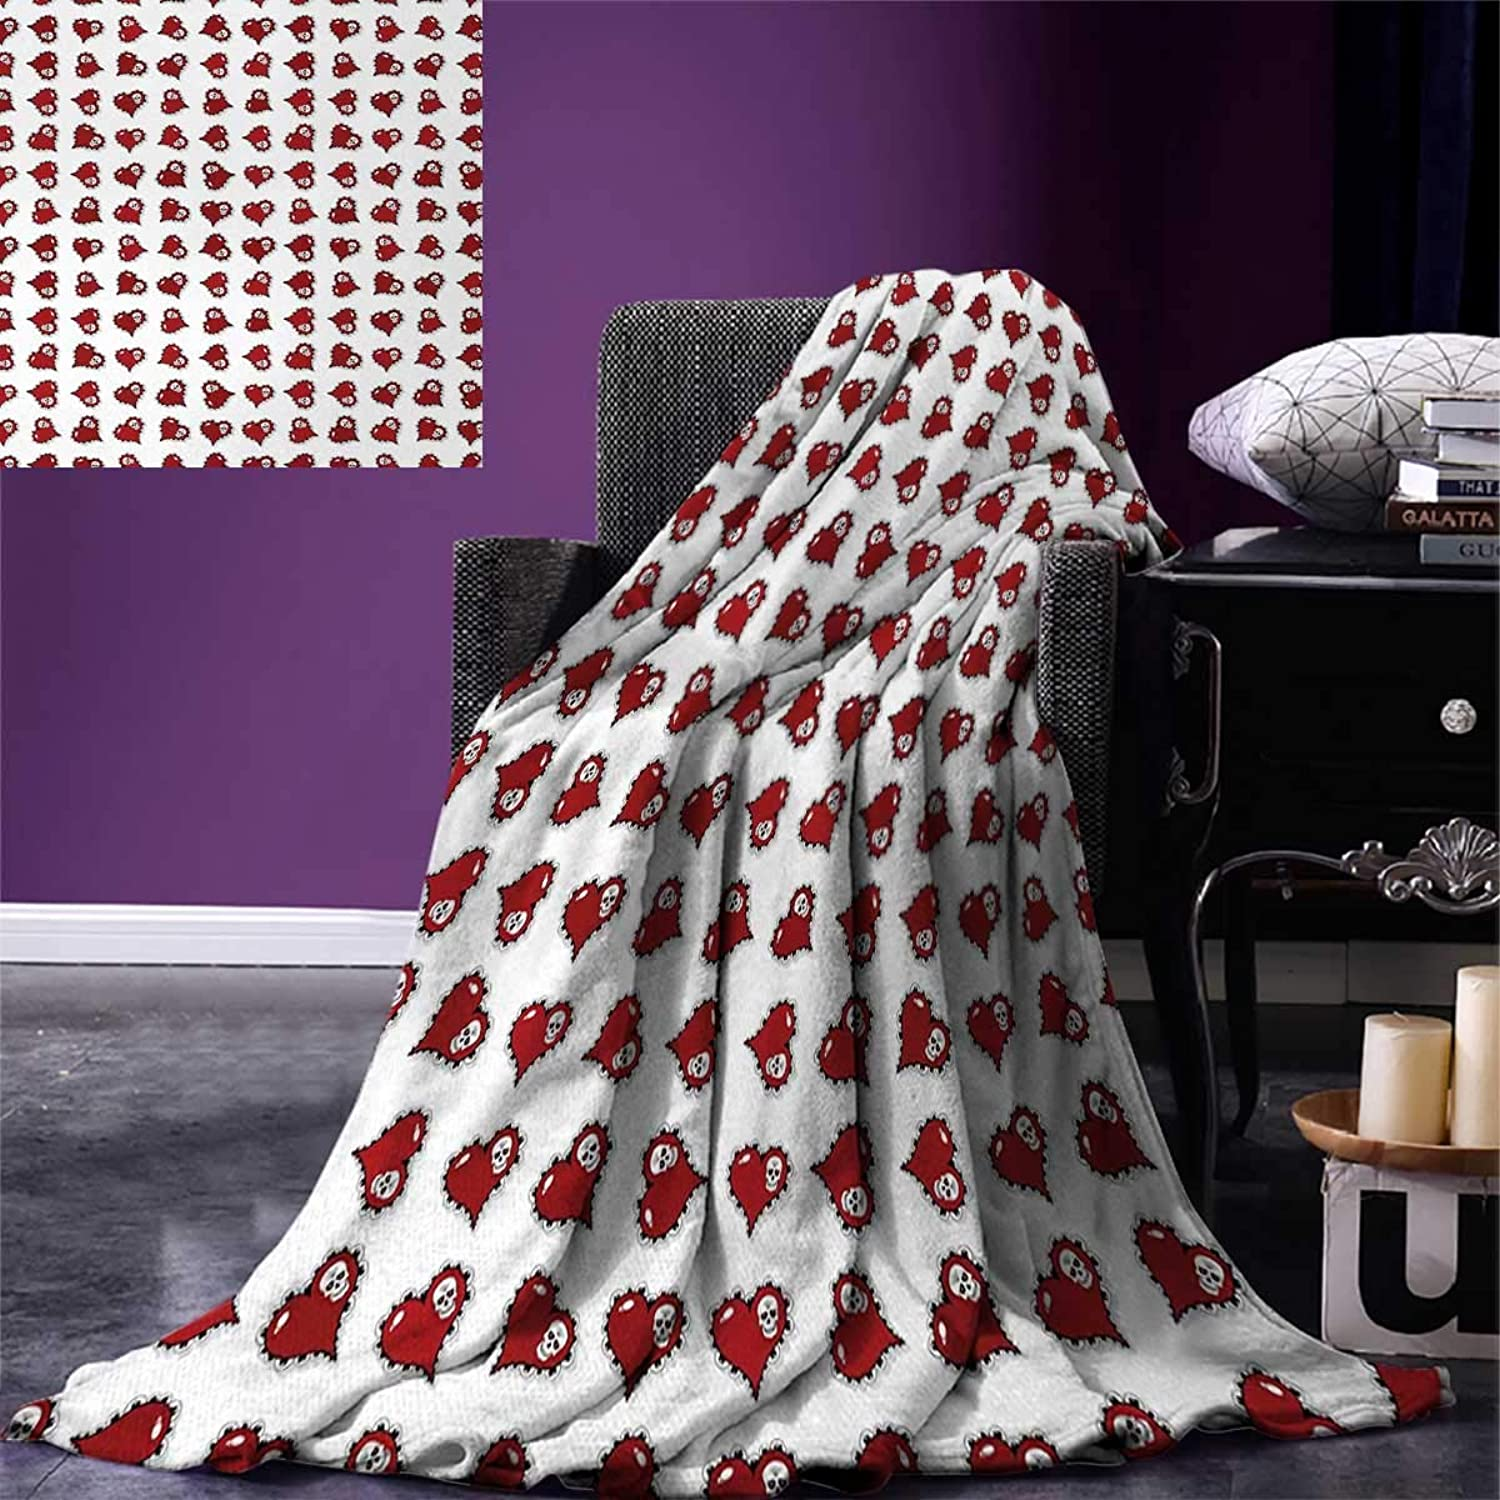 Anniutwo Skull King Flannel Blanket Vibrant Skeleton Patterns Inside Ornate Gothic Victorian Style Red Hearts Weave Pattern Extra Long Blanket 90 x108  Ruby Red Black White